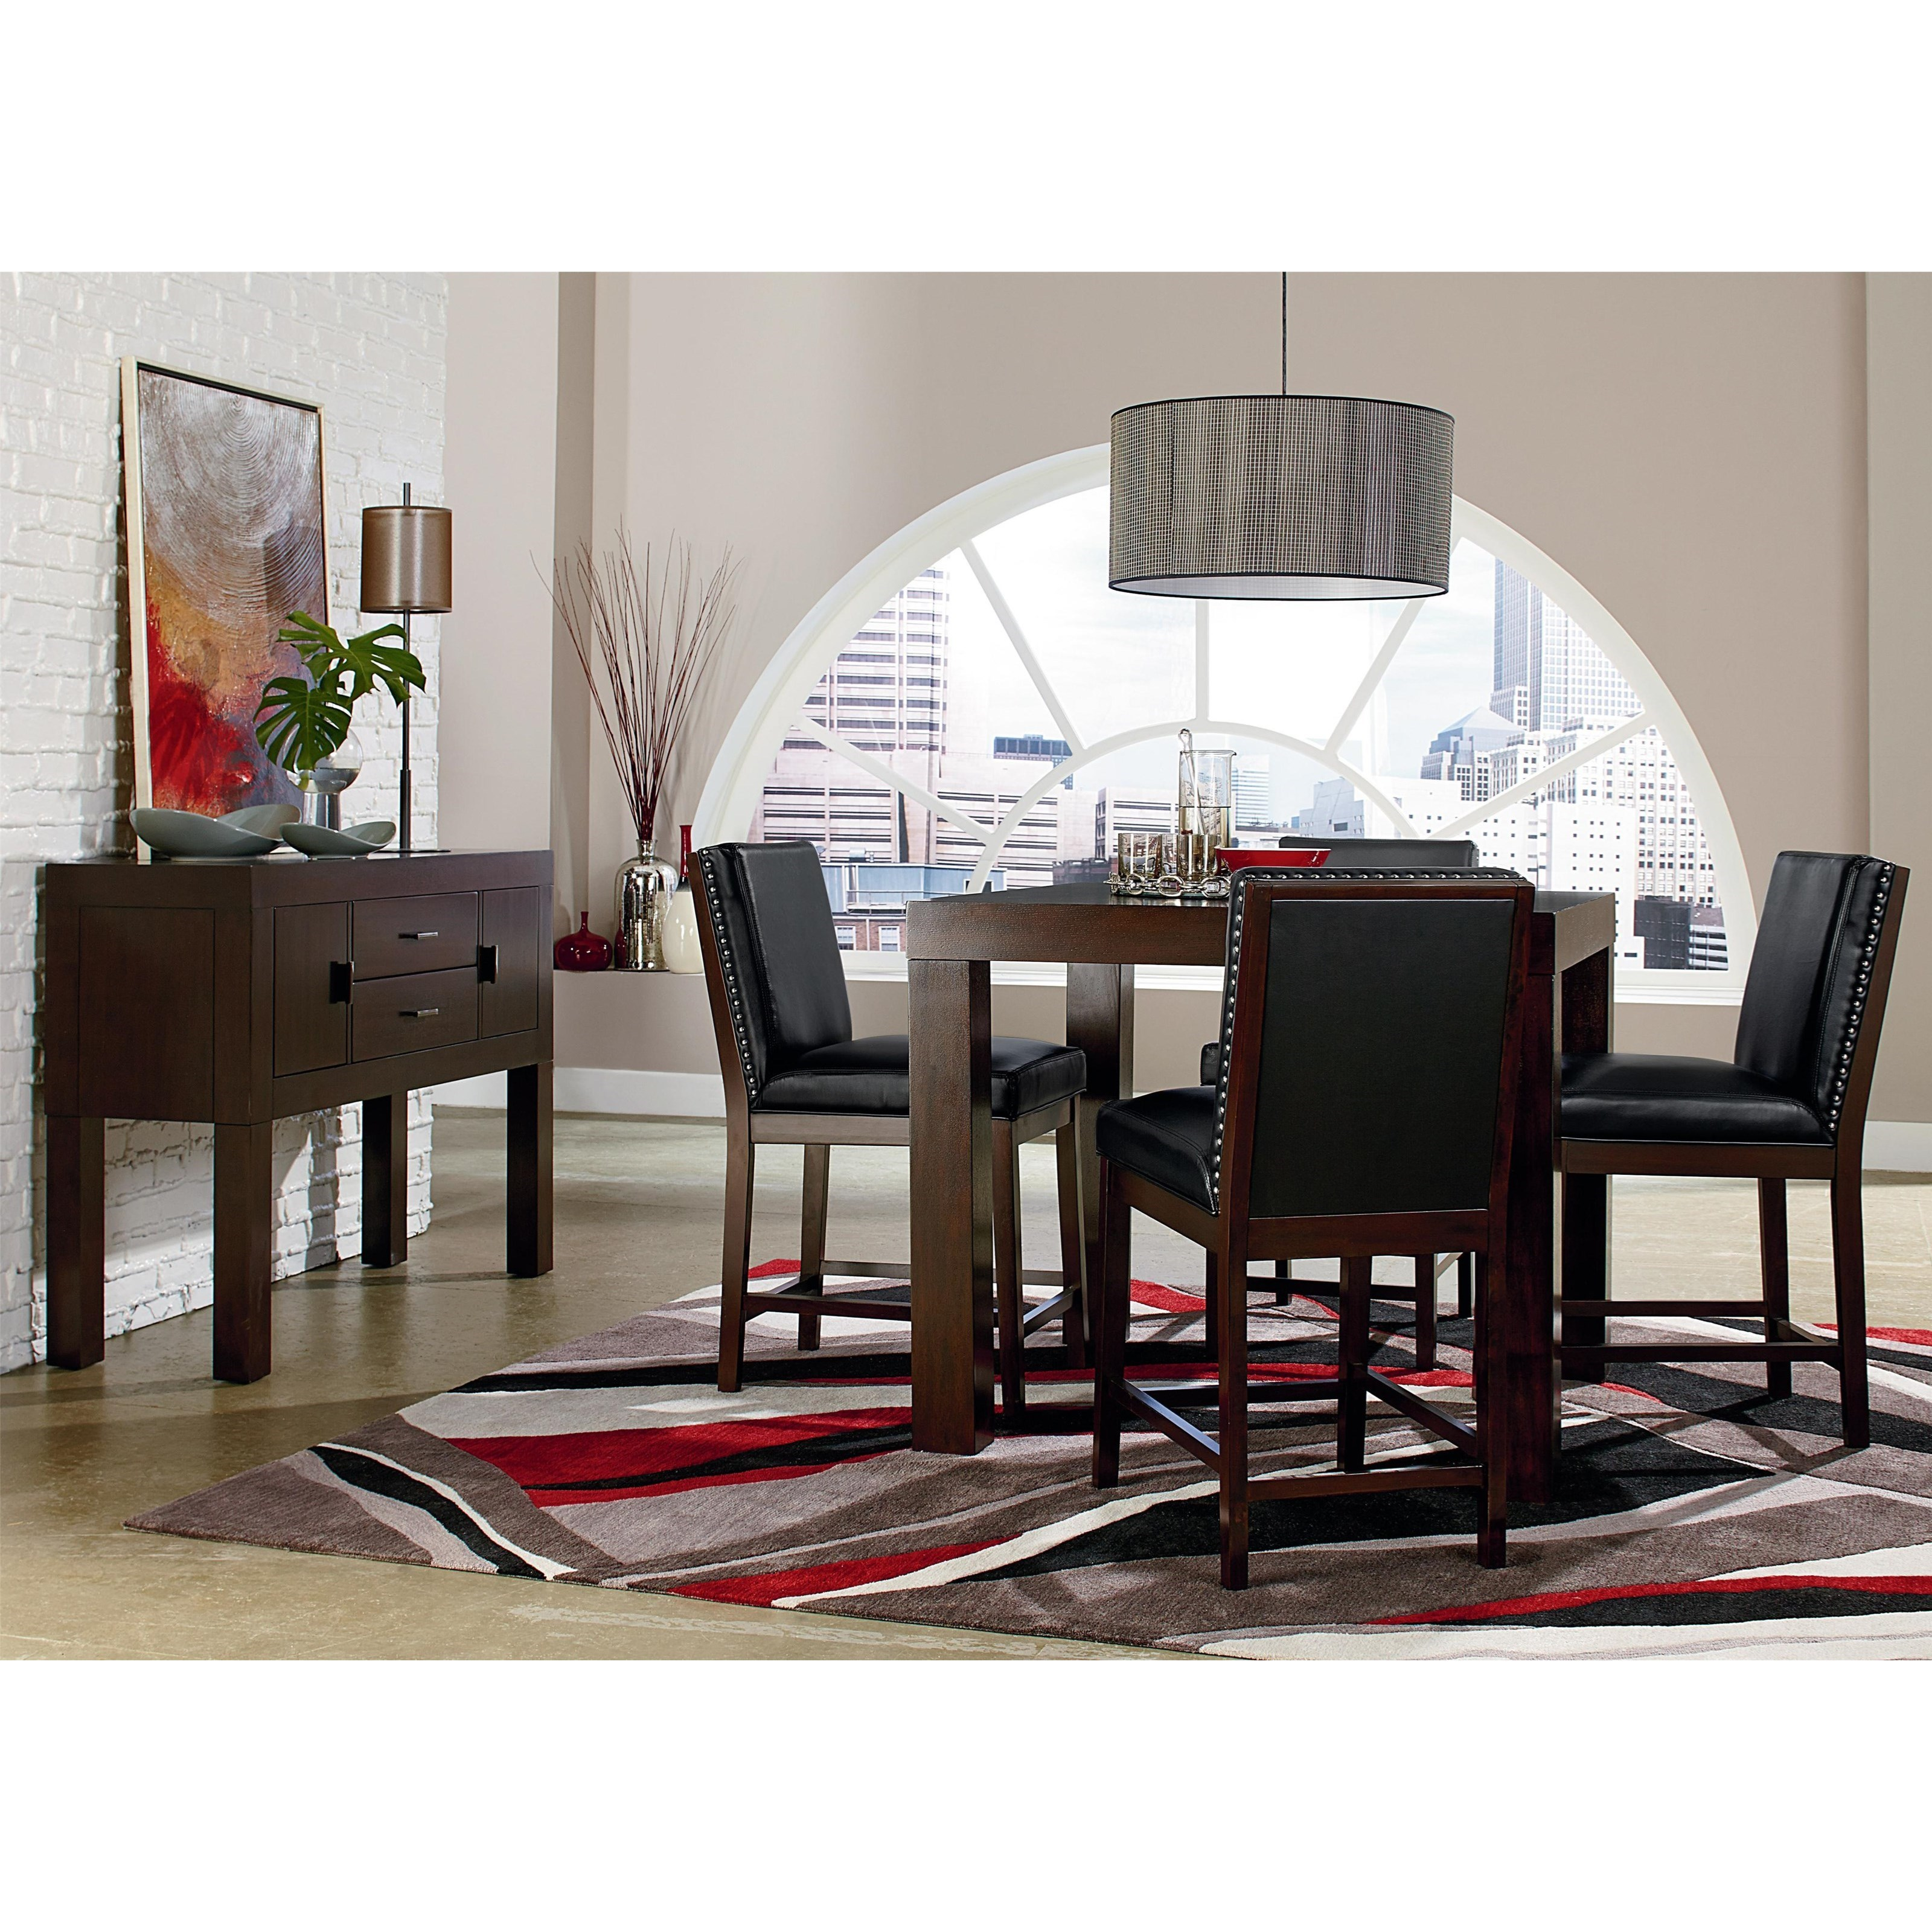 Standard Furniture Couture Elegance Counter Height Square Table And Stool  Set